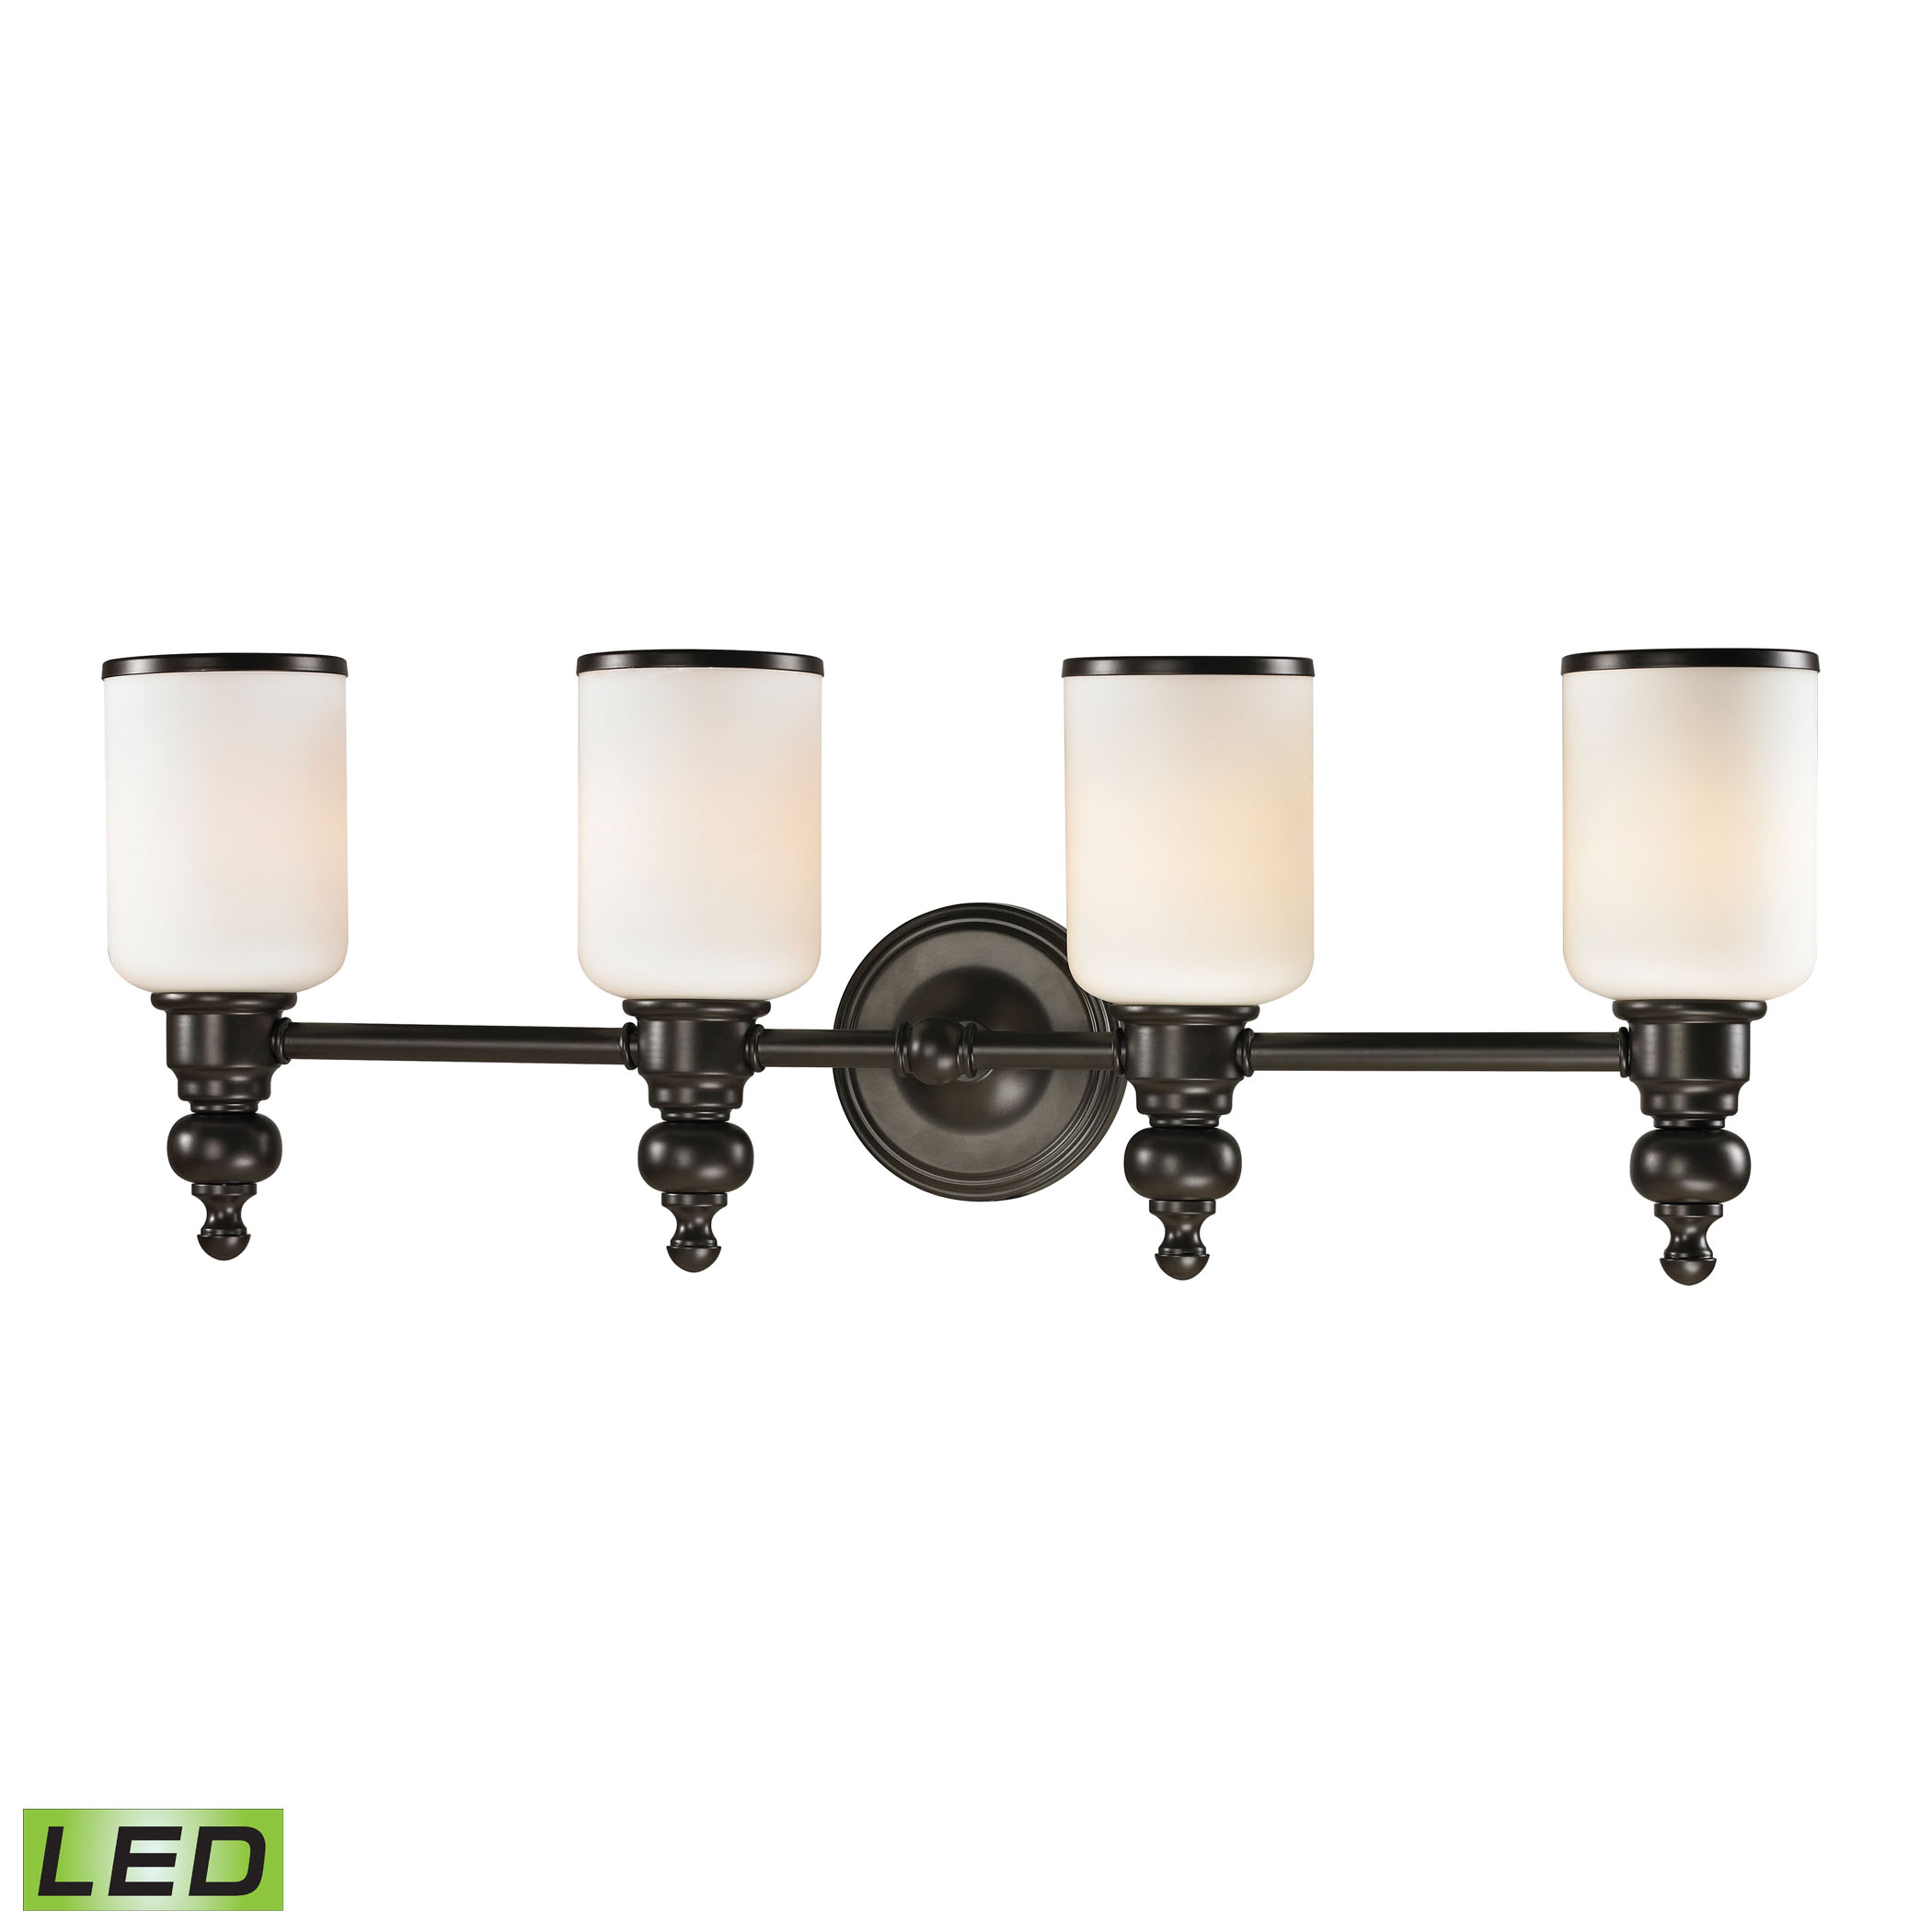 Bristol Collection 4 Light Bath in Oil Rubbed Bronze - LED, 800 Lumens (3200 Lumens Total) with Full